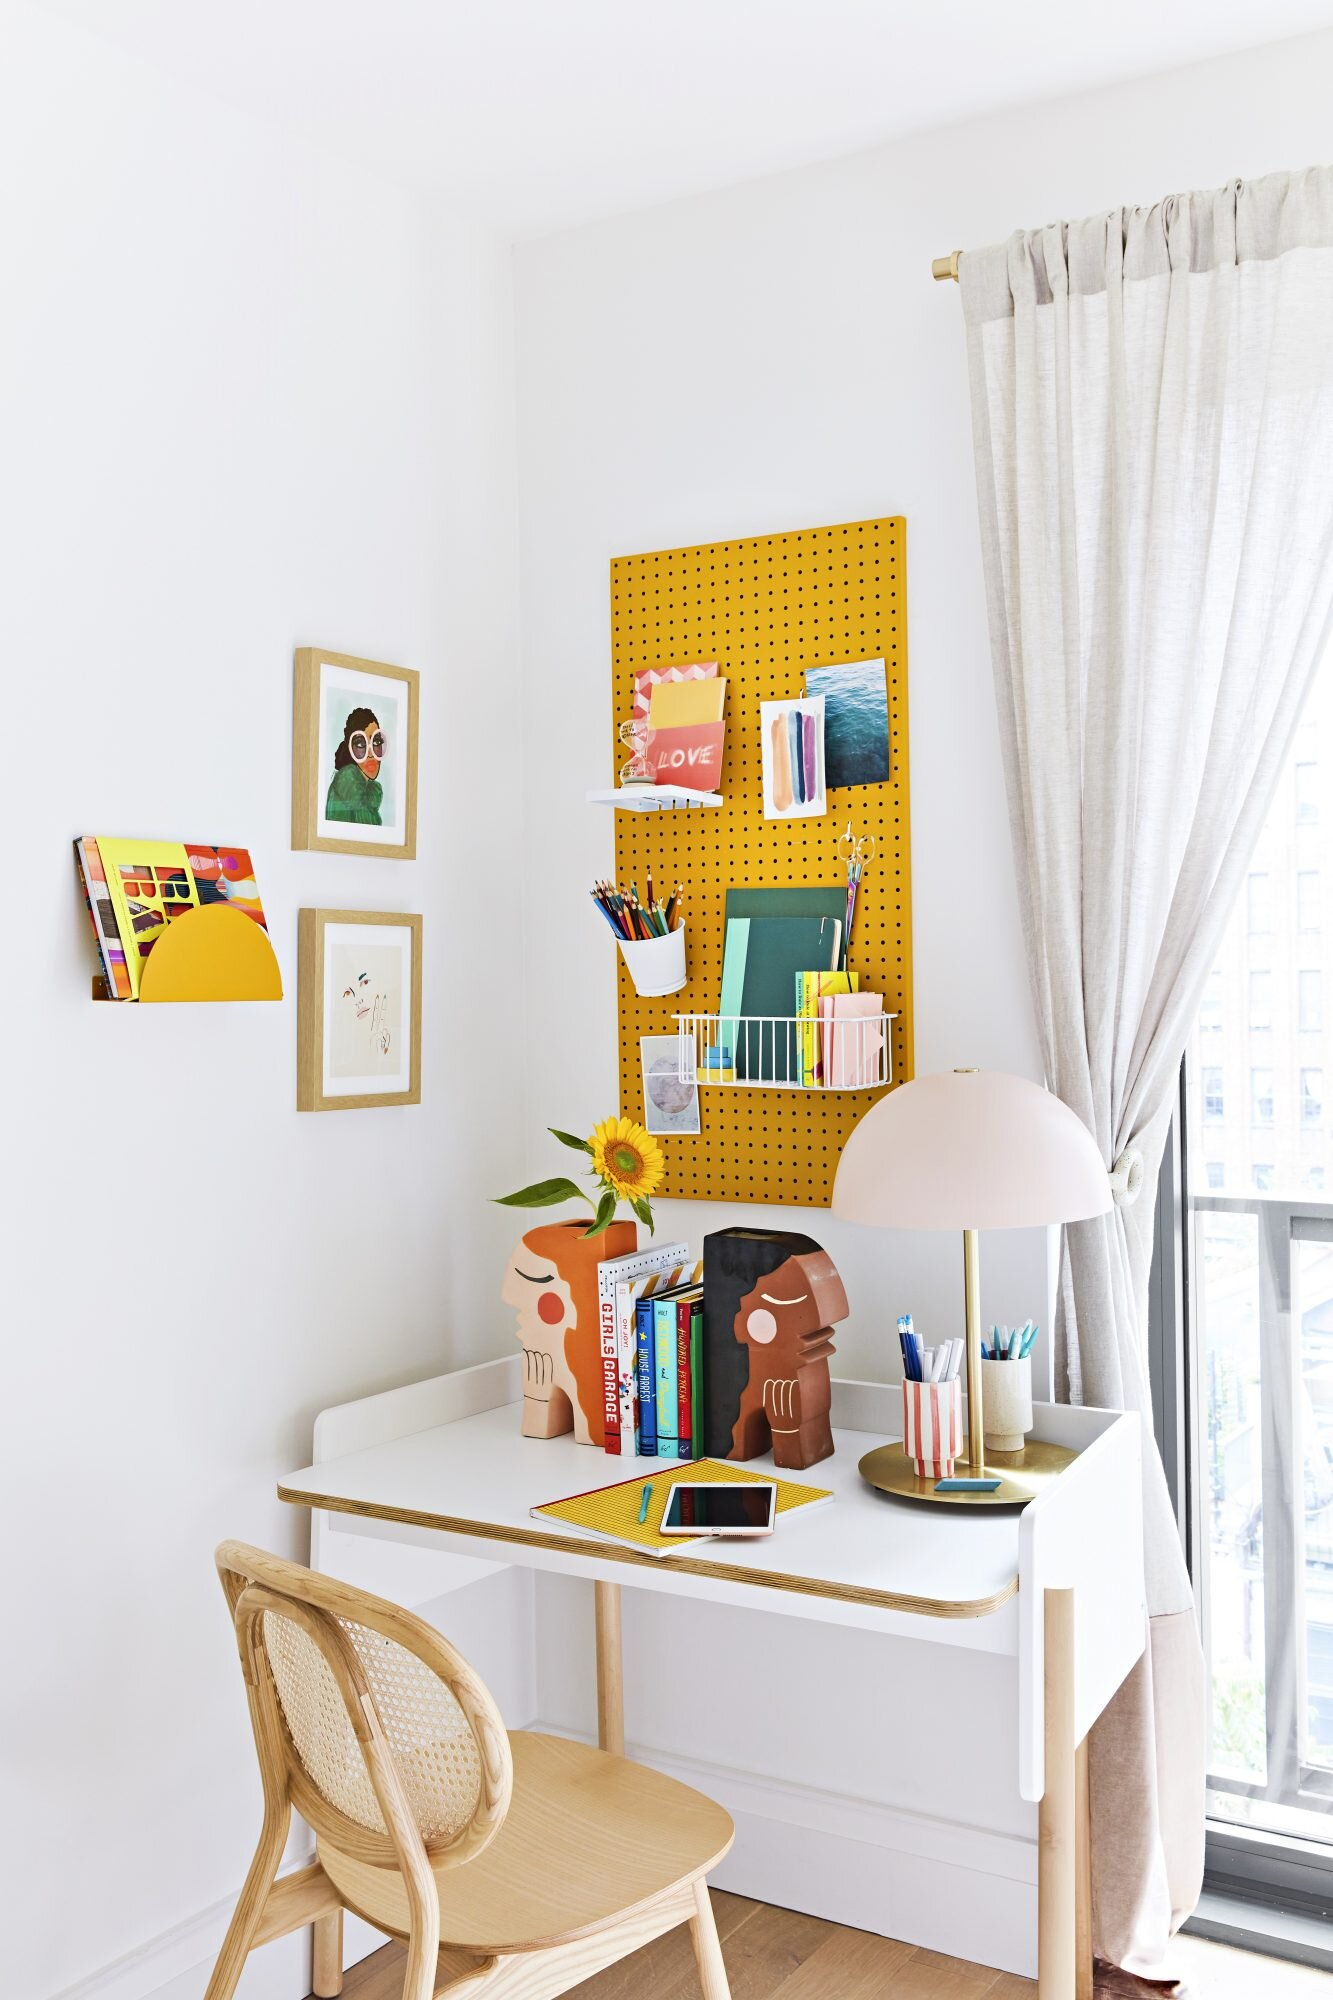 Tween bedroom with pegboard organizer at desk